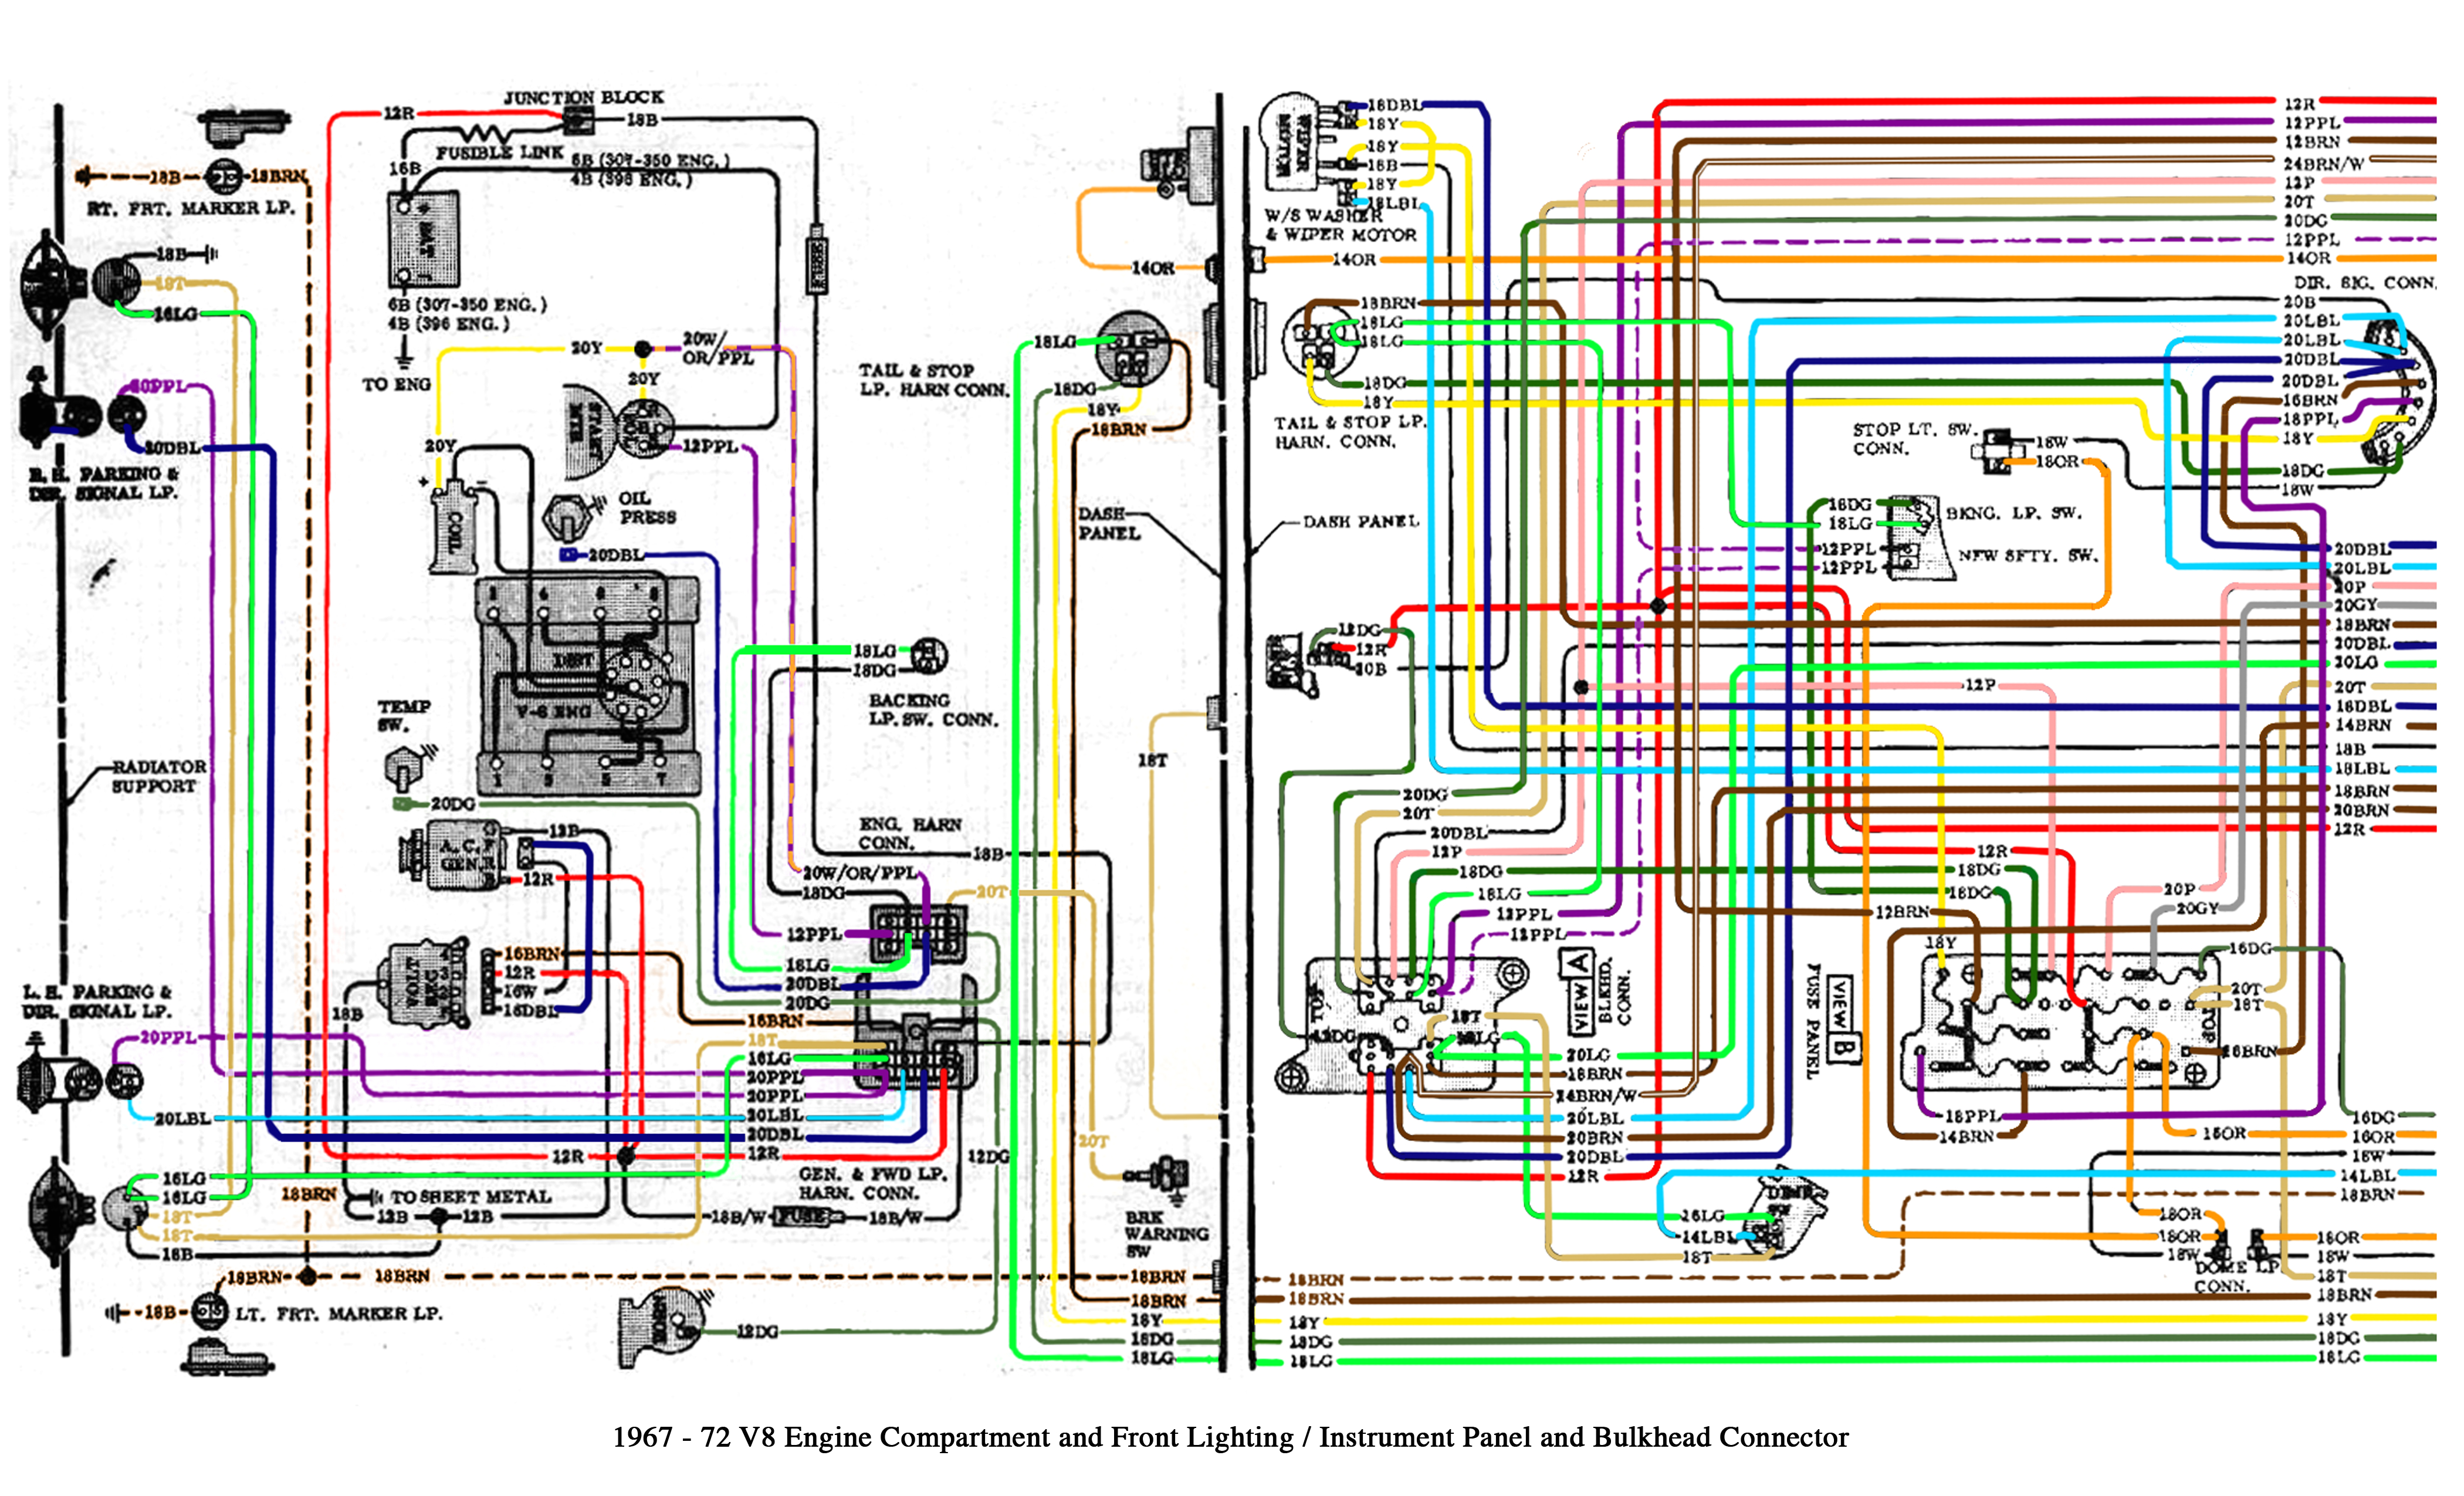 1971 c 10 fuse box diagram wiring diagrams konsult 1971 chevy c10 fuse box diagram 1971 c 10 fuse box diagram